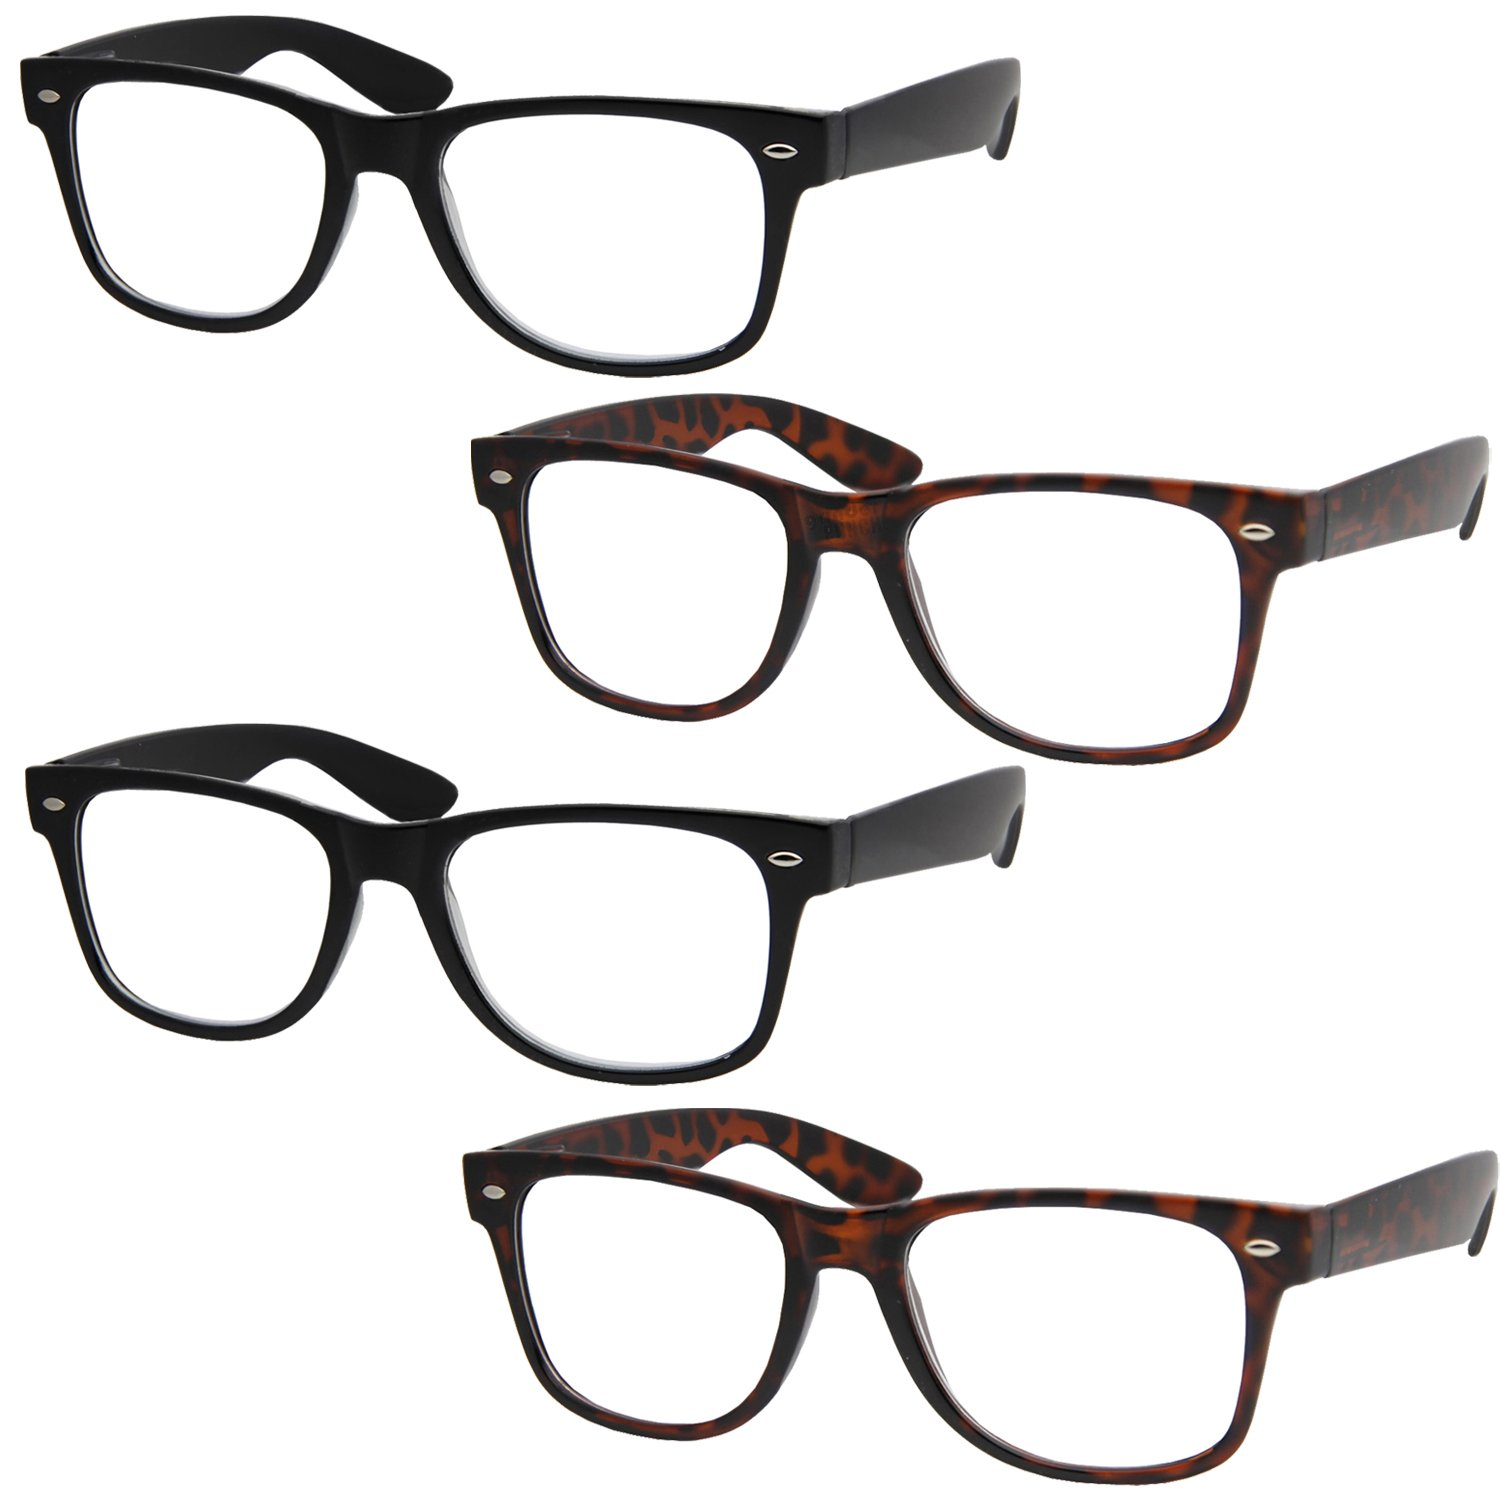 4 pairs deluxe reading glasses standard fit hinge